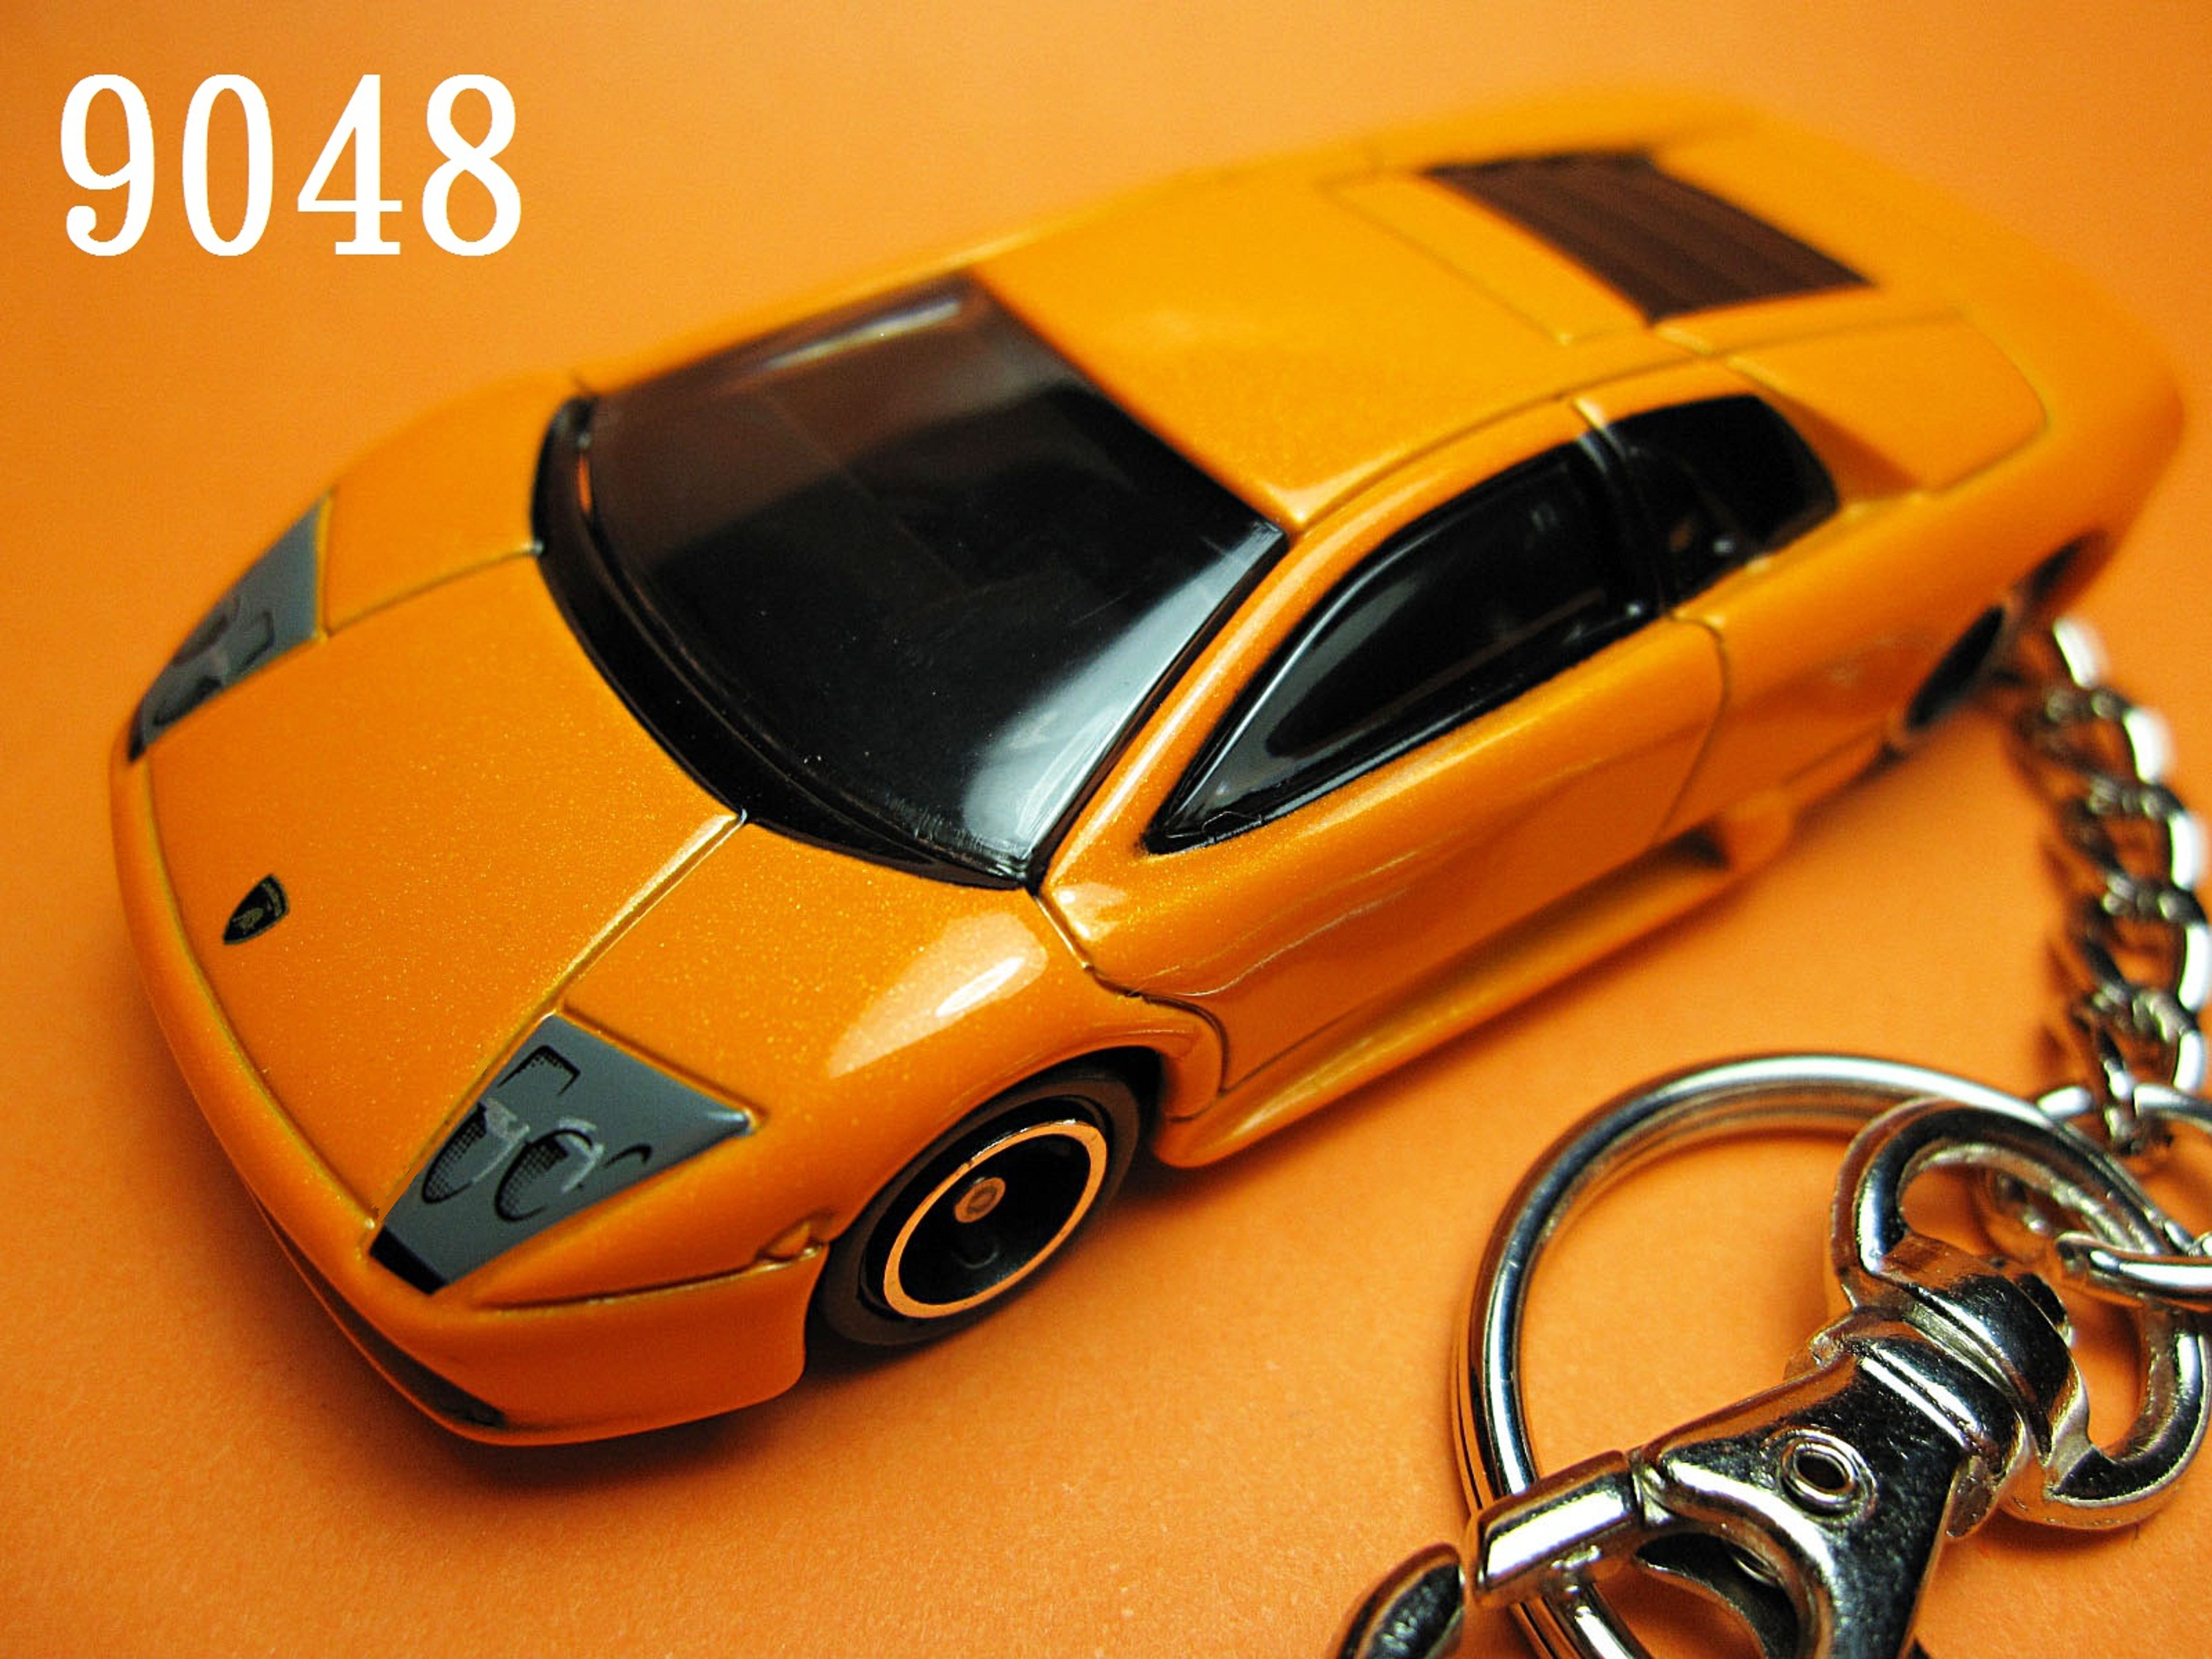 Lamborghini Murcielago (Orange) Die-cast Key Chain